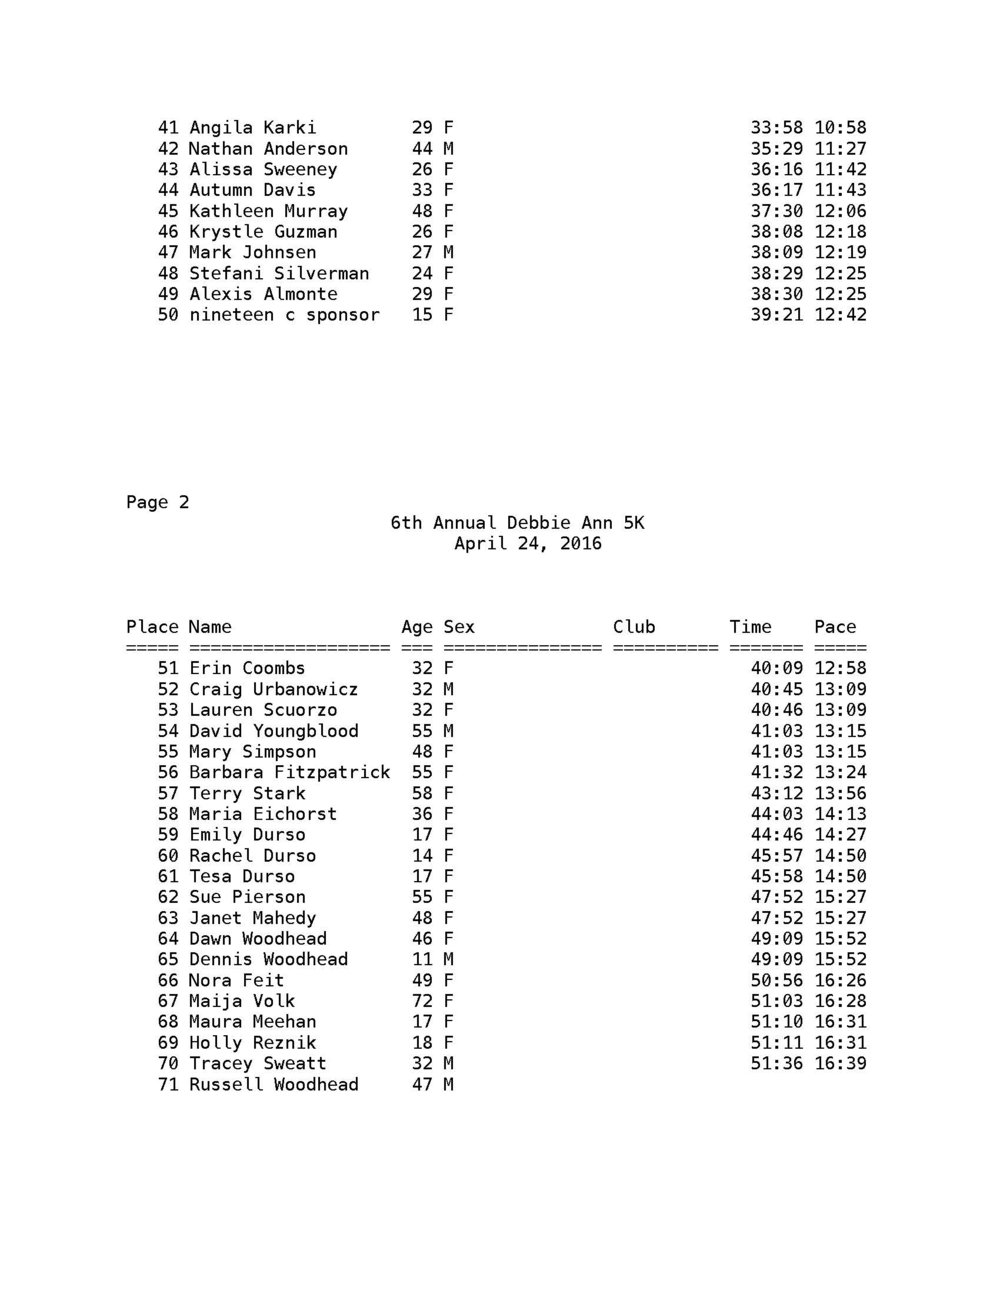 Debbie Ann 5K Overall Results 2016_Page_2.jpg